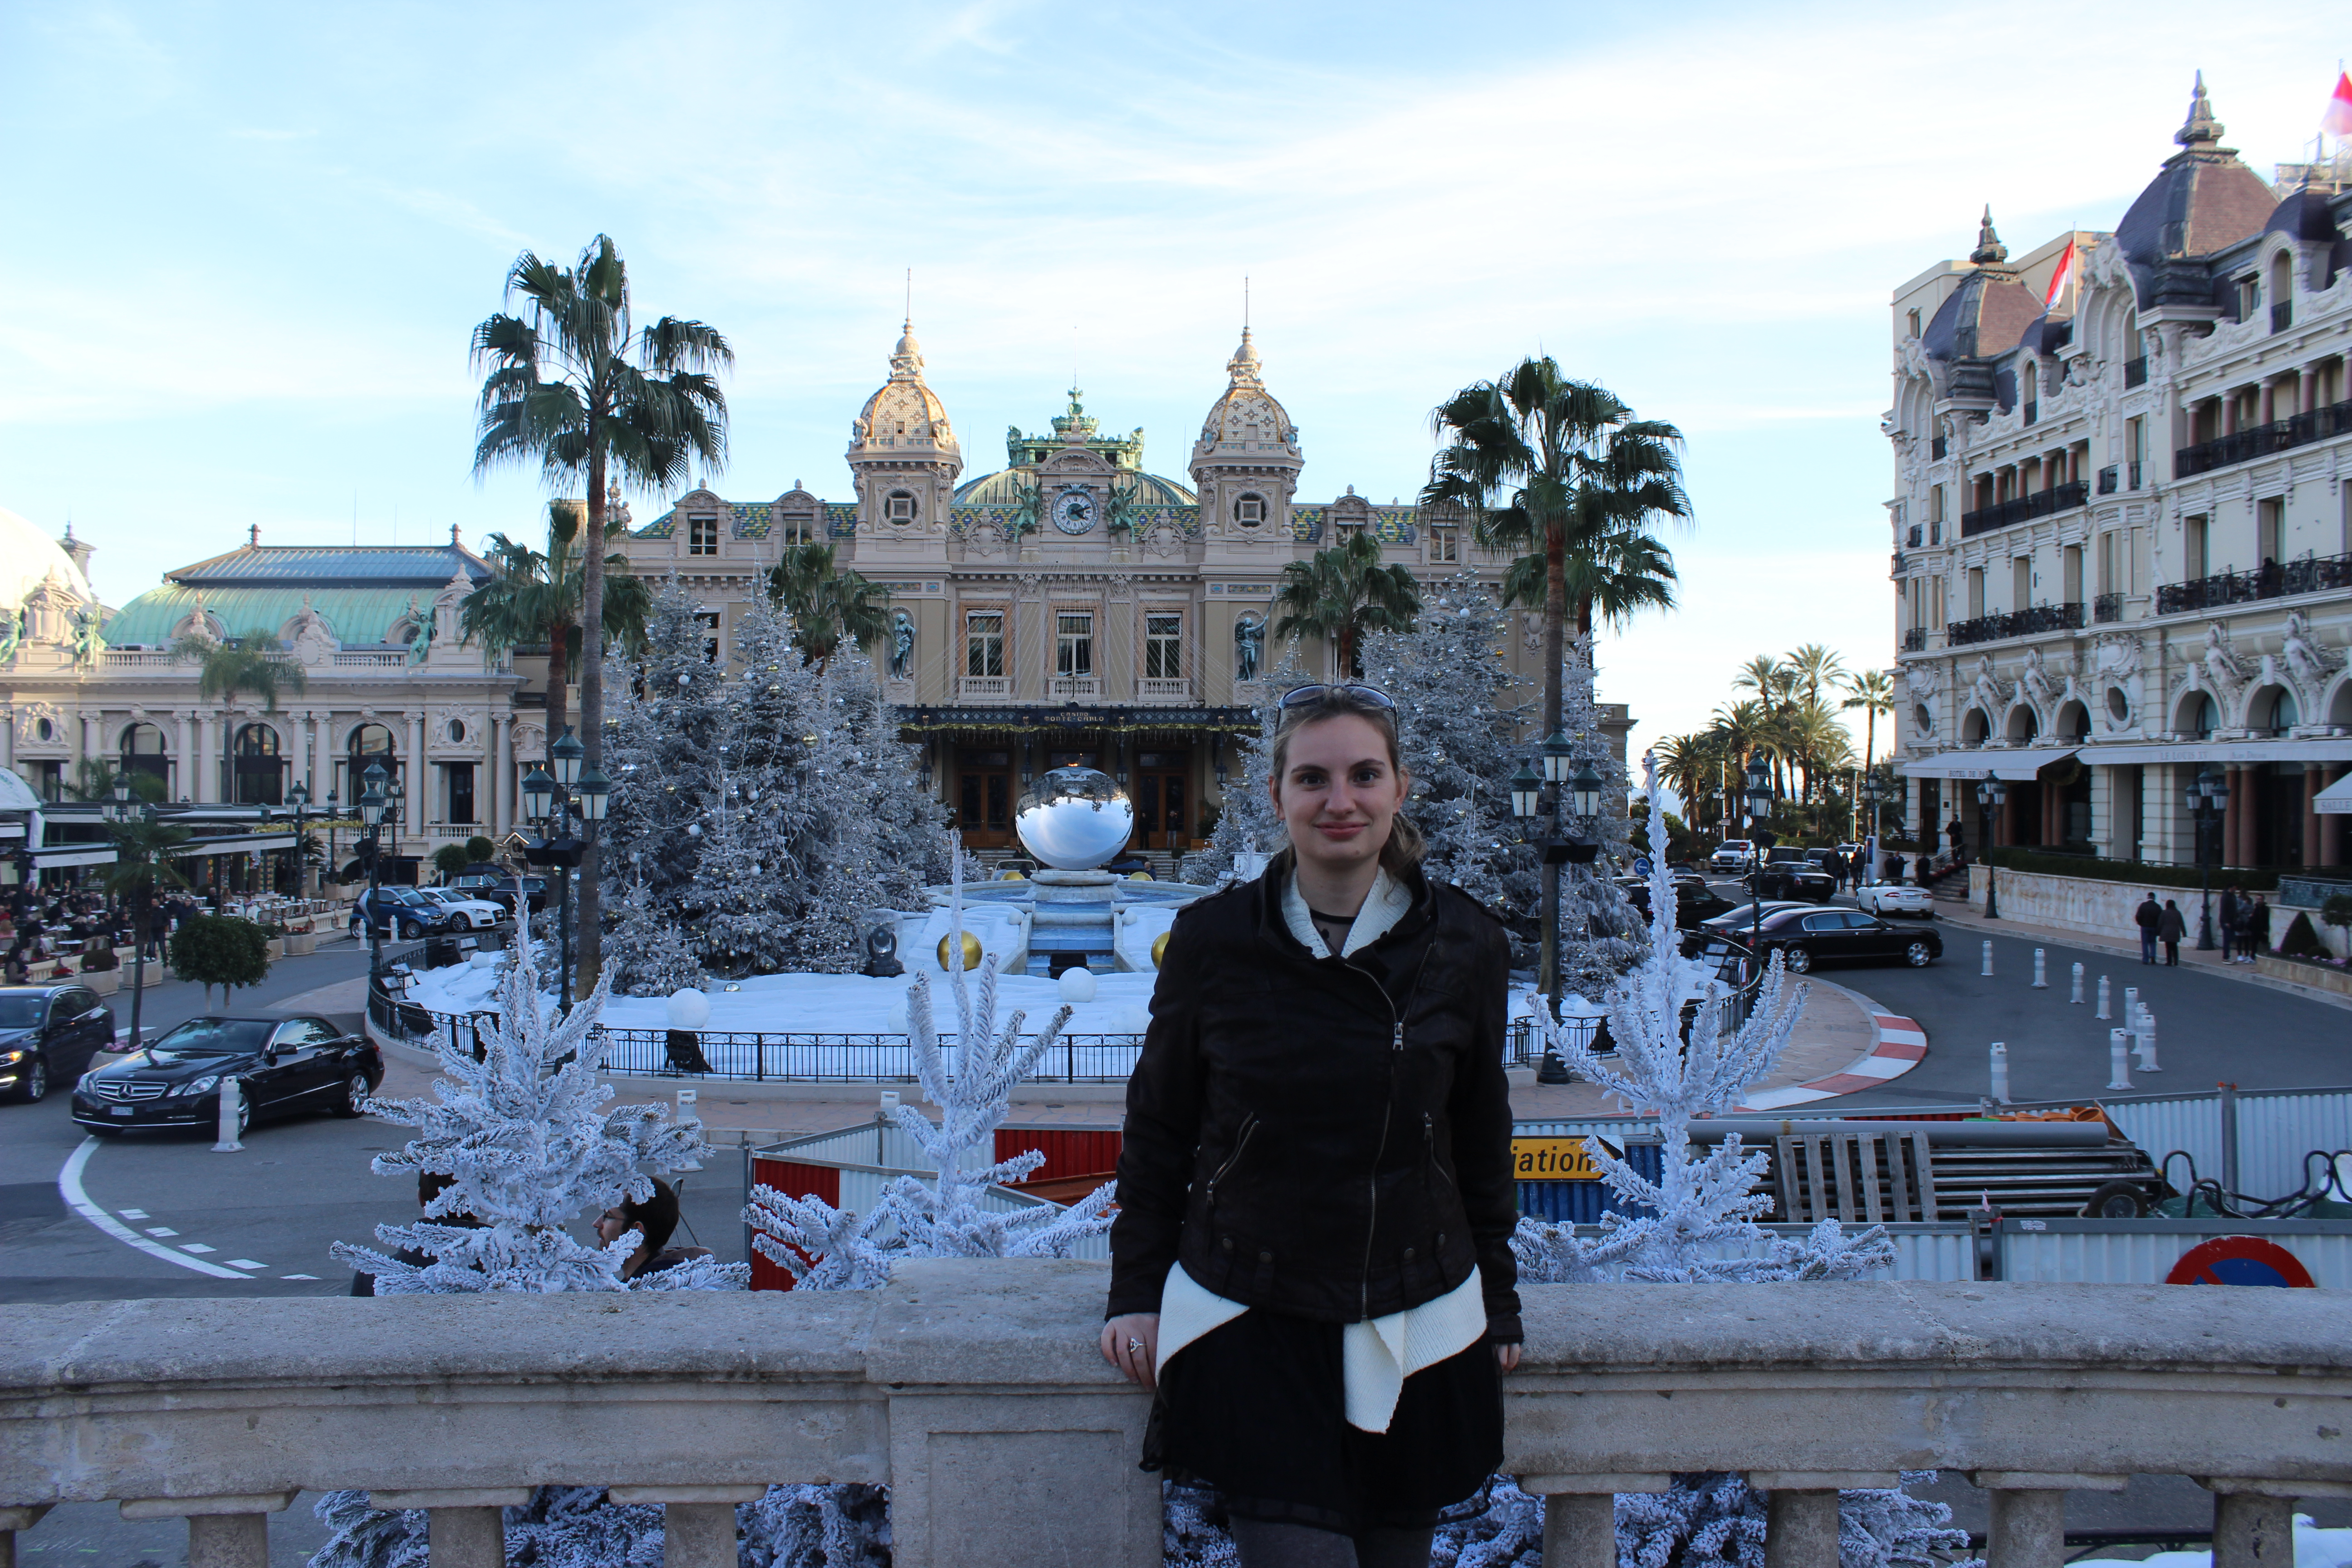 Petite photo en face du Casino de Monaco